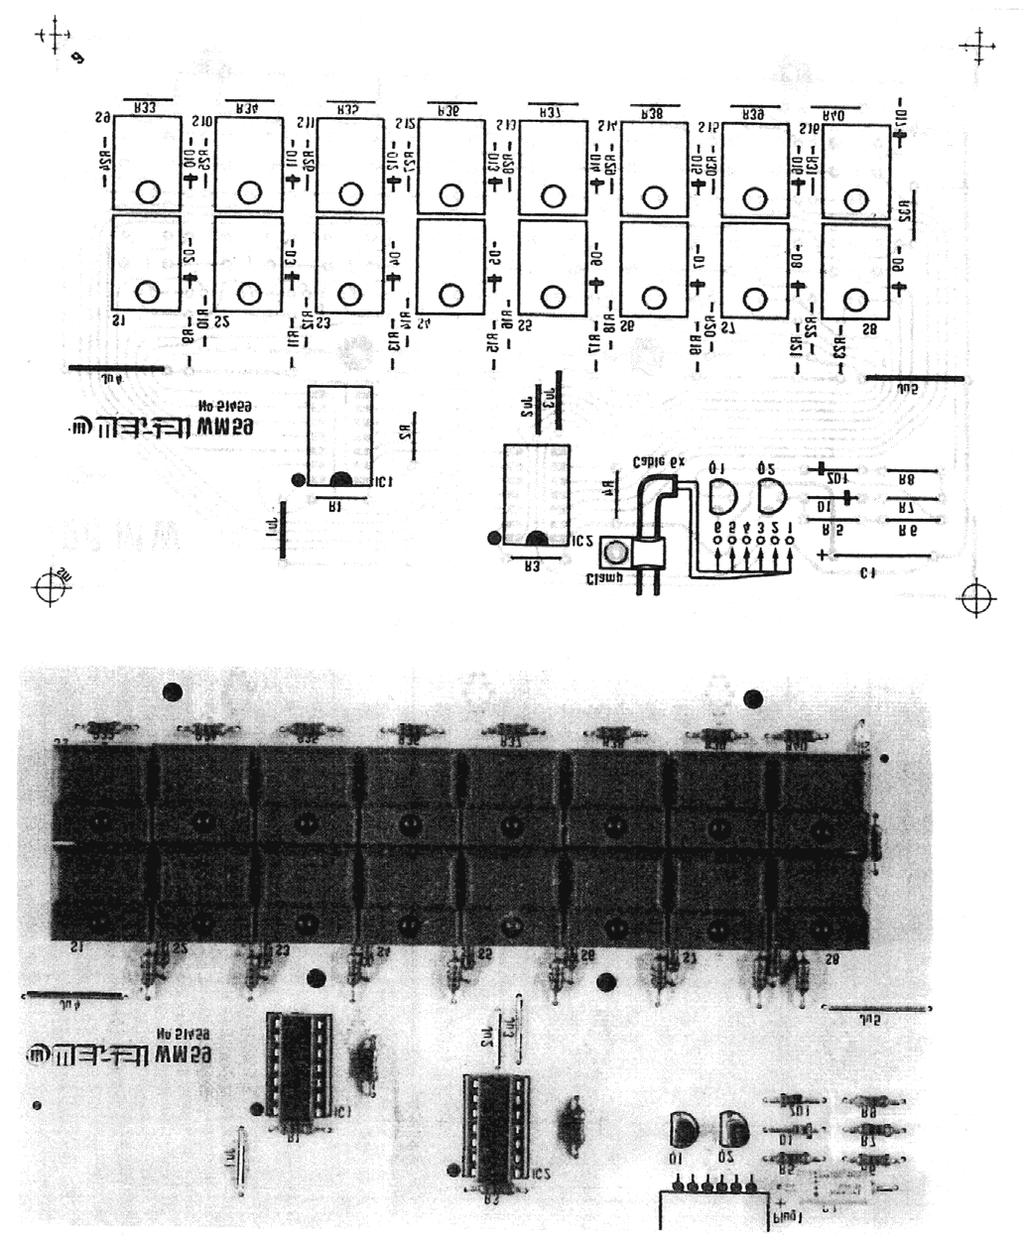 Assembly Manual Technical Data Wersimatic Cx 1 Pdf Music View Topic The Vco 555 As Well On Thomas Henry Schematic Figure 45 Pc Board Wm 59 Foil Pattern